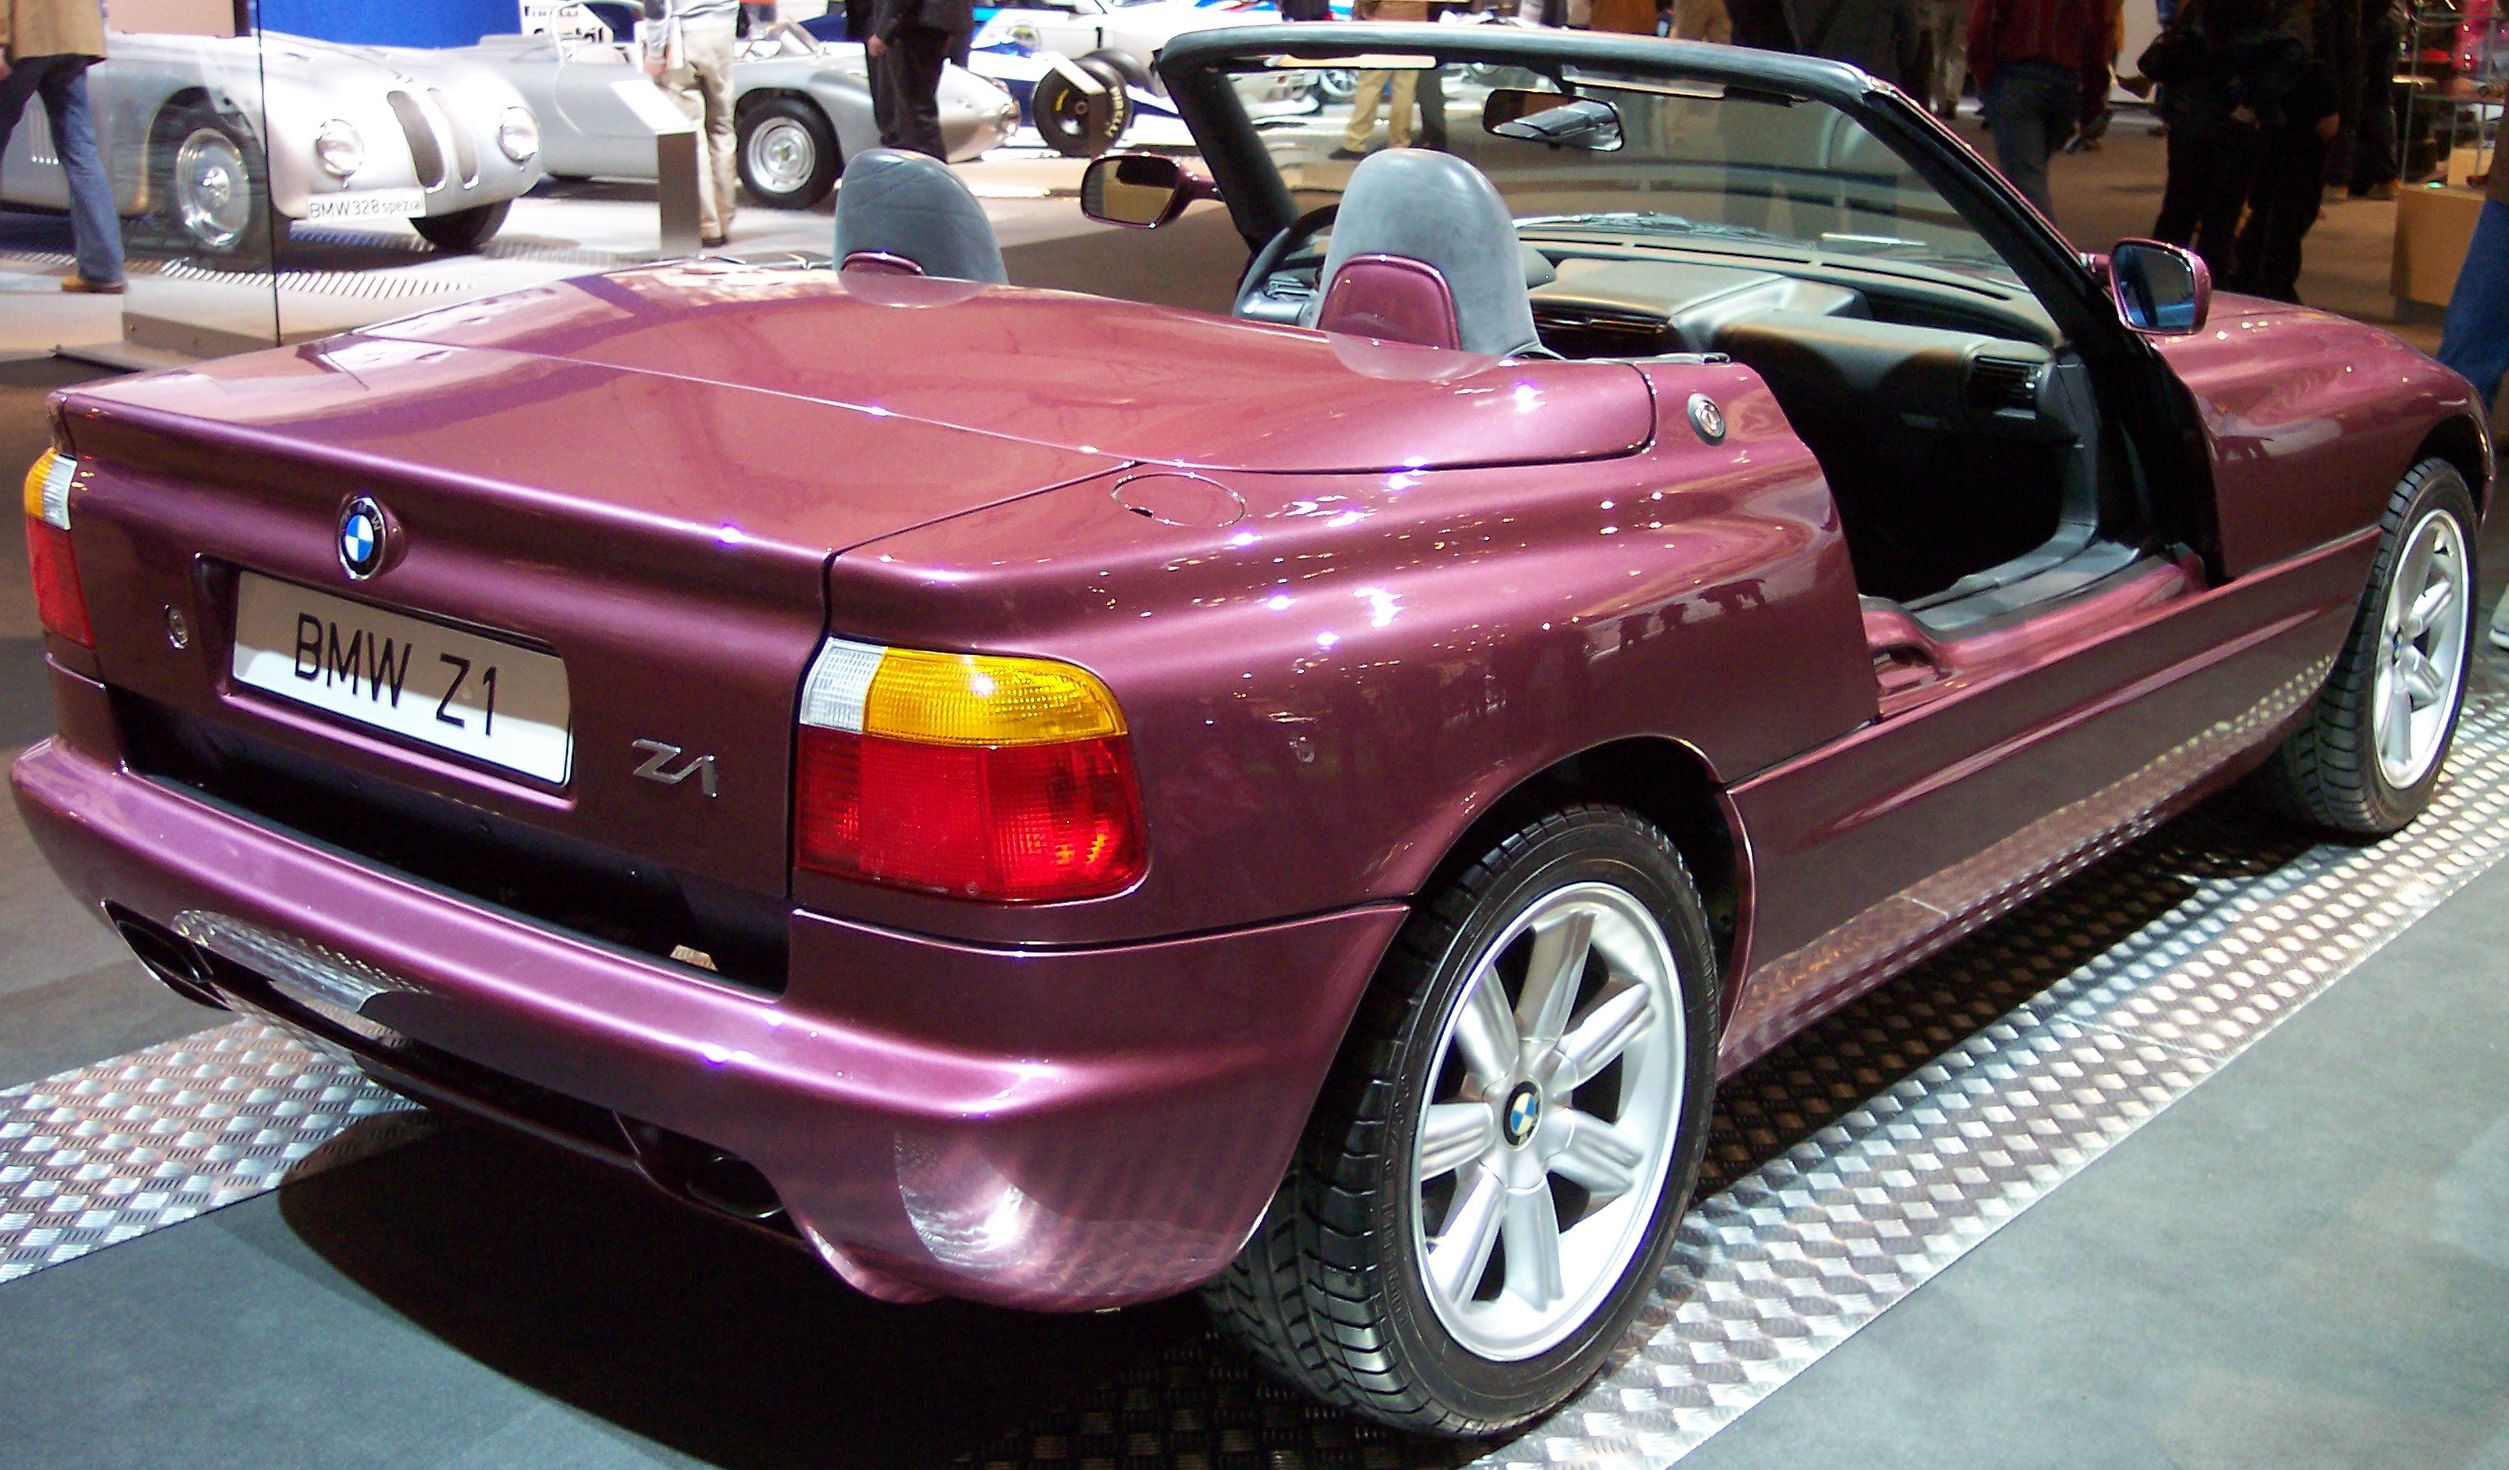 BMW_Z1_purpel_hr_TCE.jpg